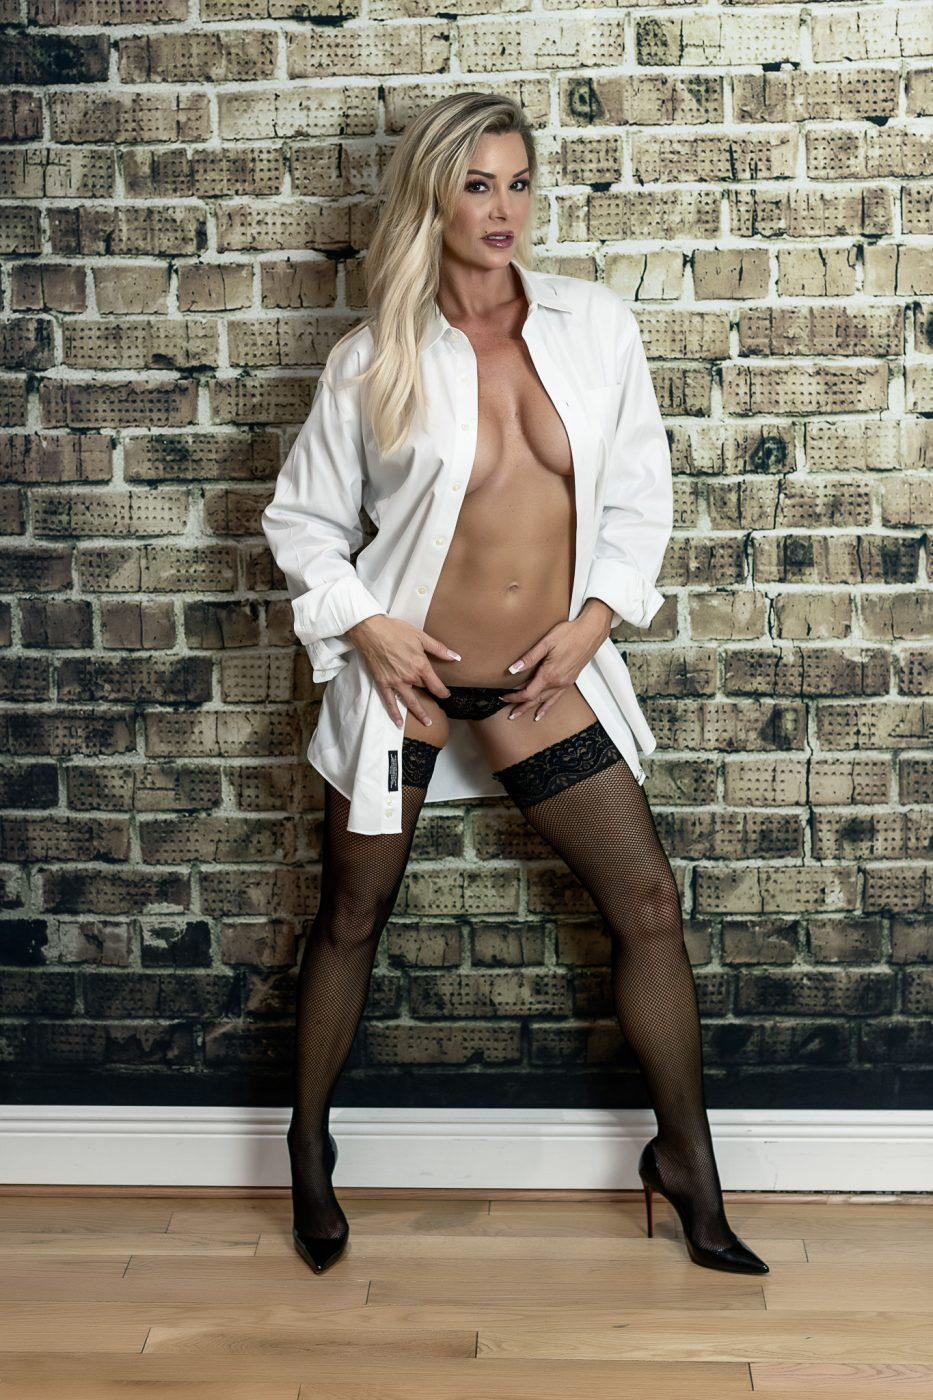 His white dress shirt is smoking hot at a Houston boudoir session at Heights Boudoir favorite lingerie idea